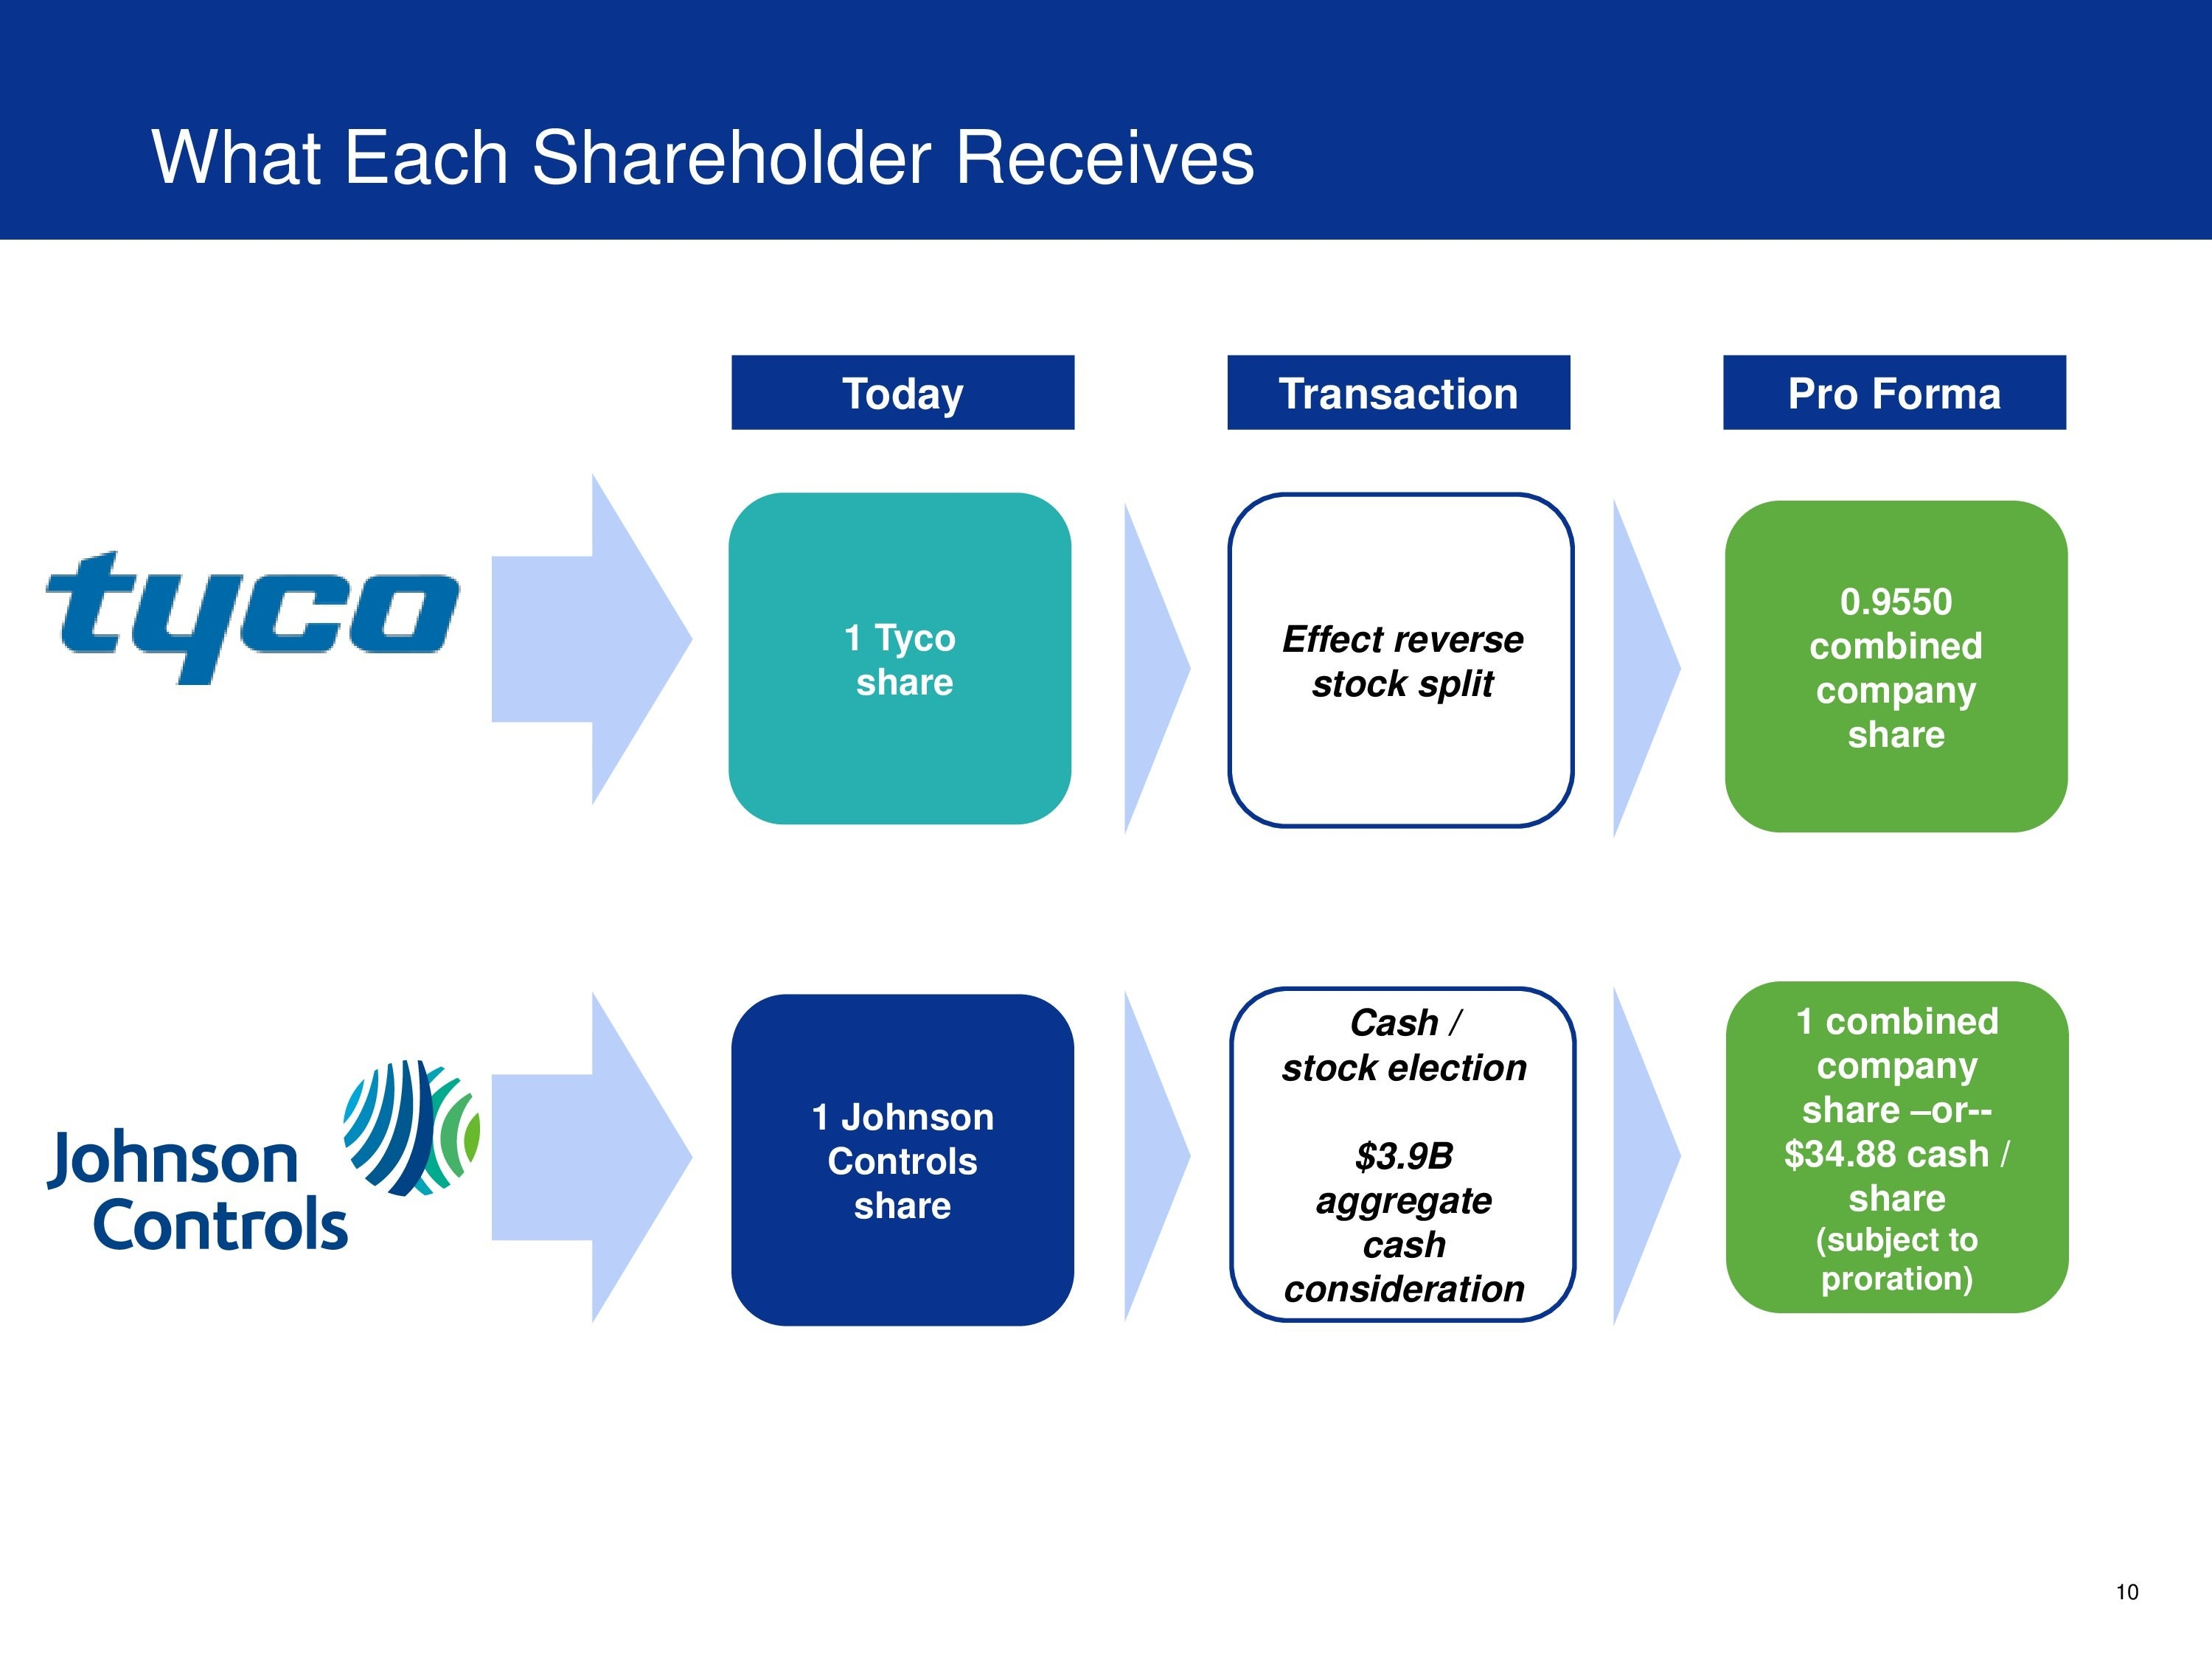 en investor relations company mergers acquisition